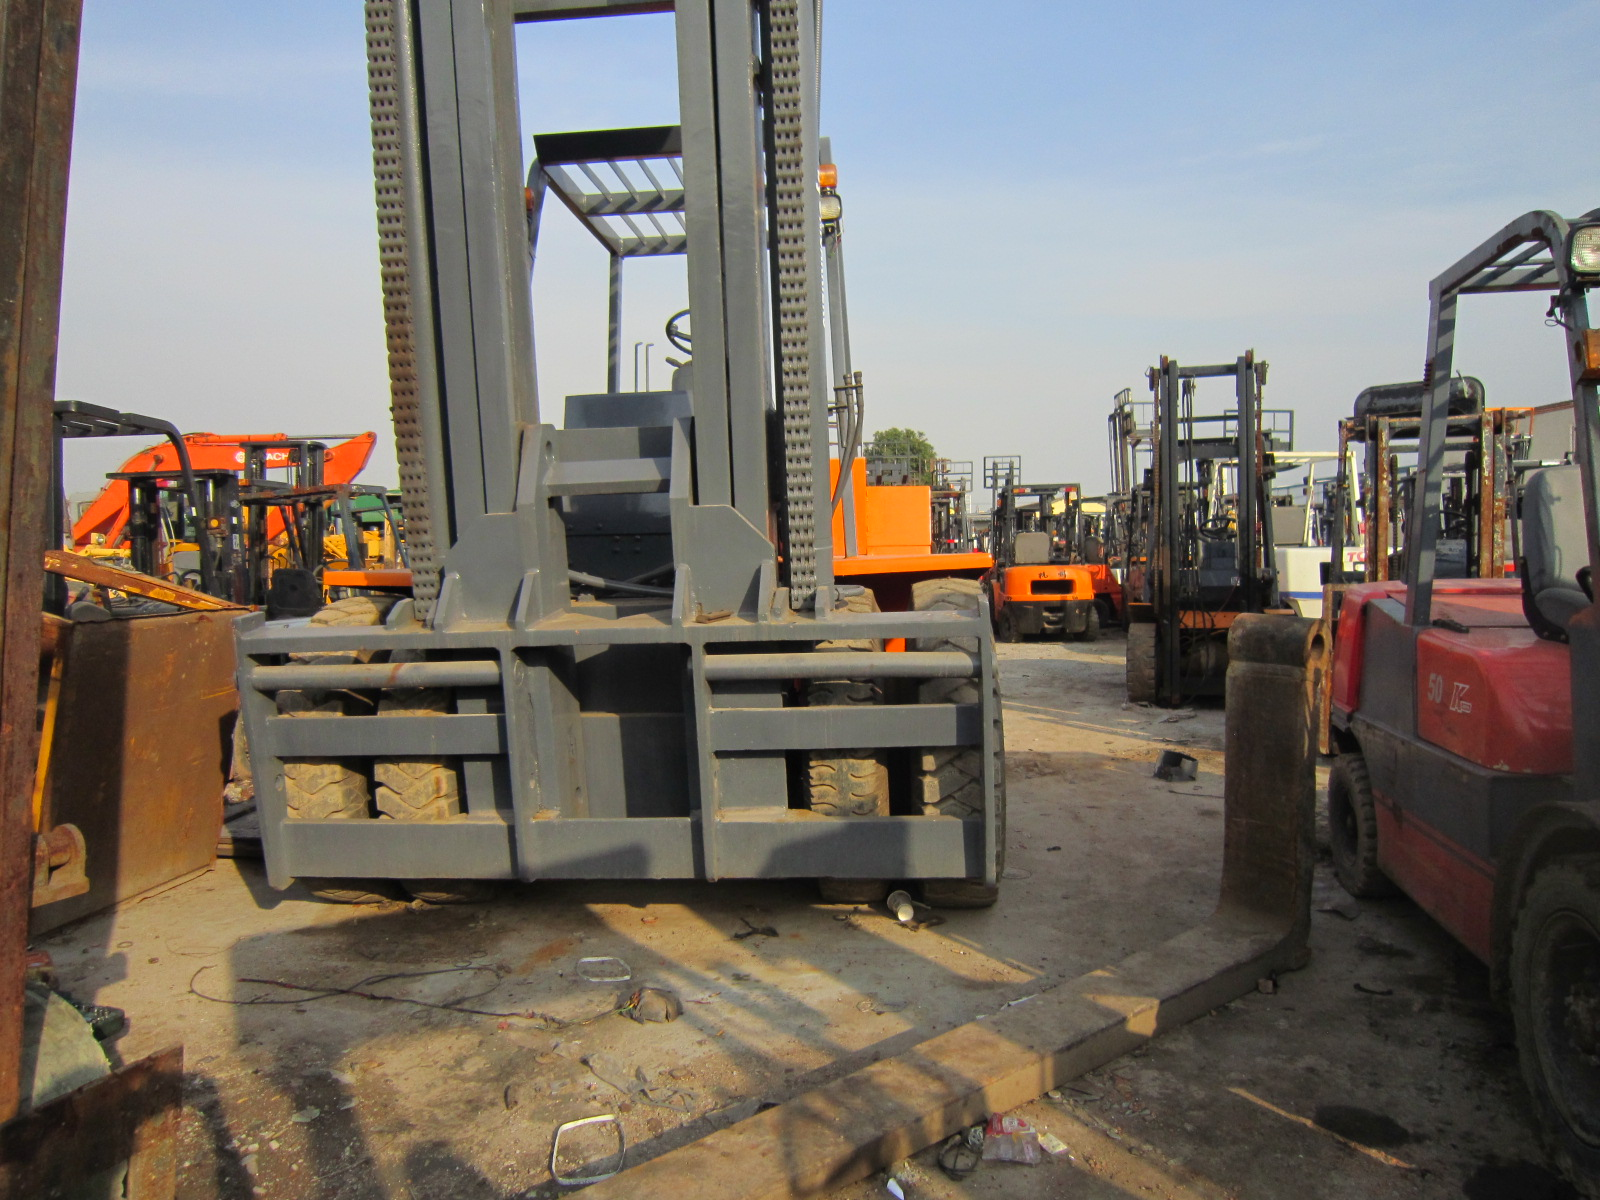 Used TCM Fd200 20ton Forklift Second Hand Cheap Tcm Fd200/100/40/30/20 Forklifts in Bulk Wholesale